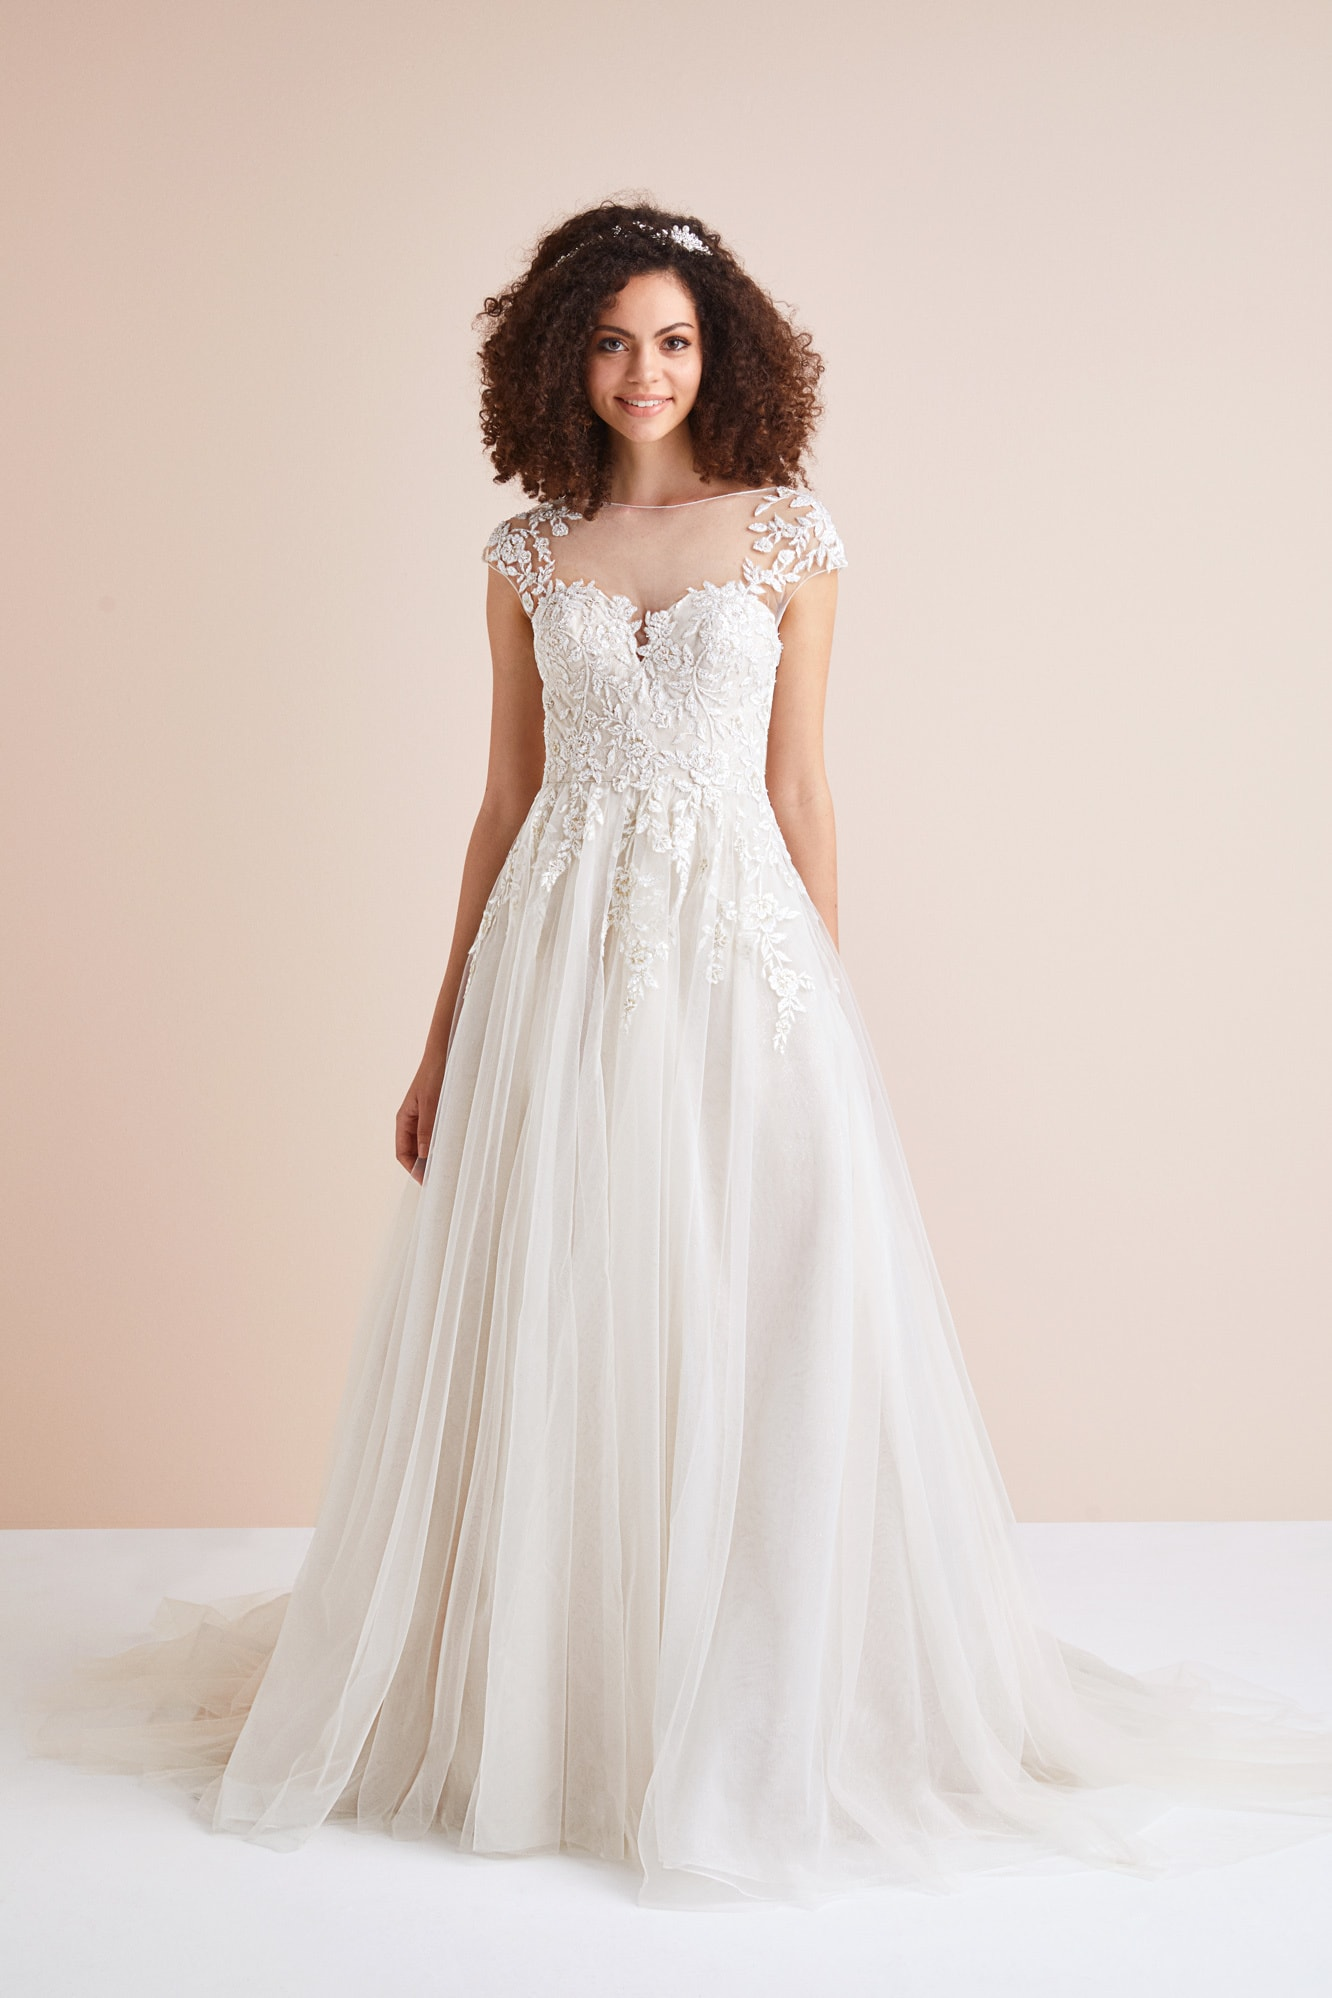 Lace Ballgown Wedding Dress